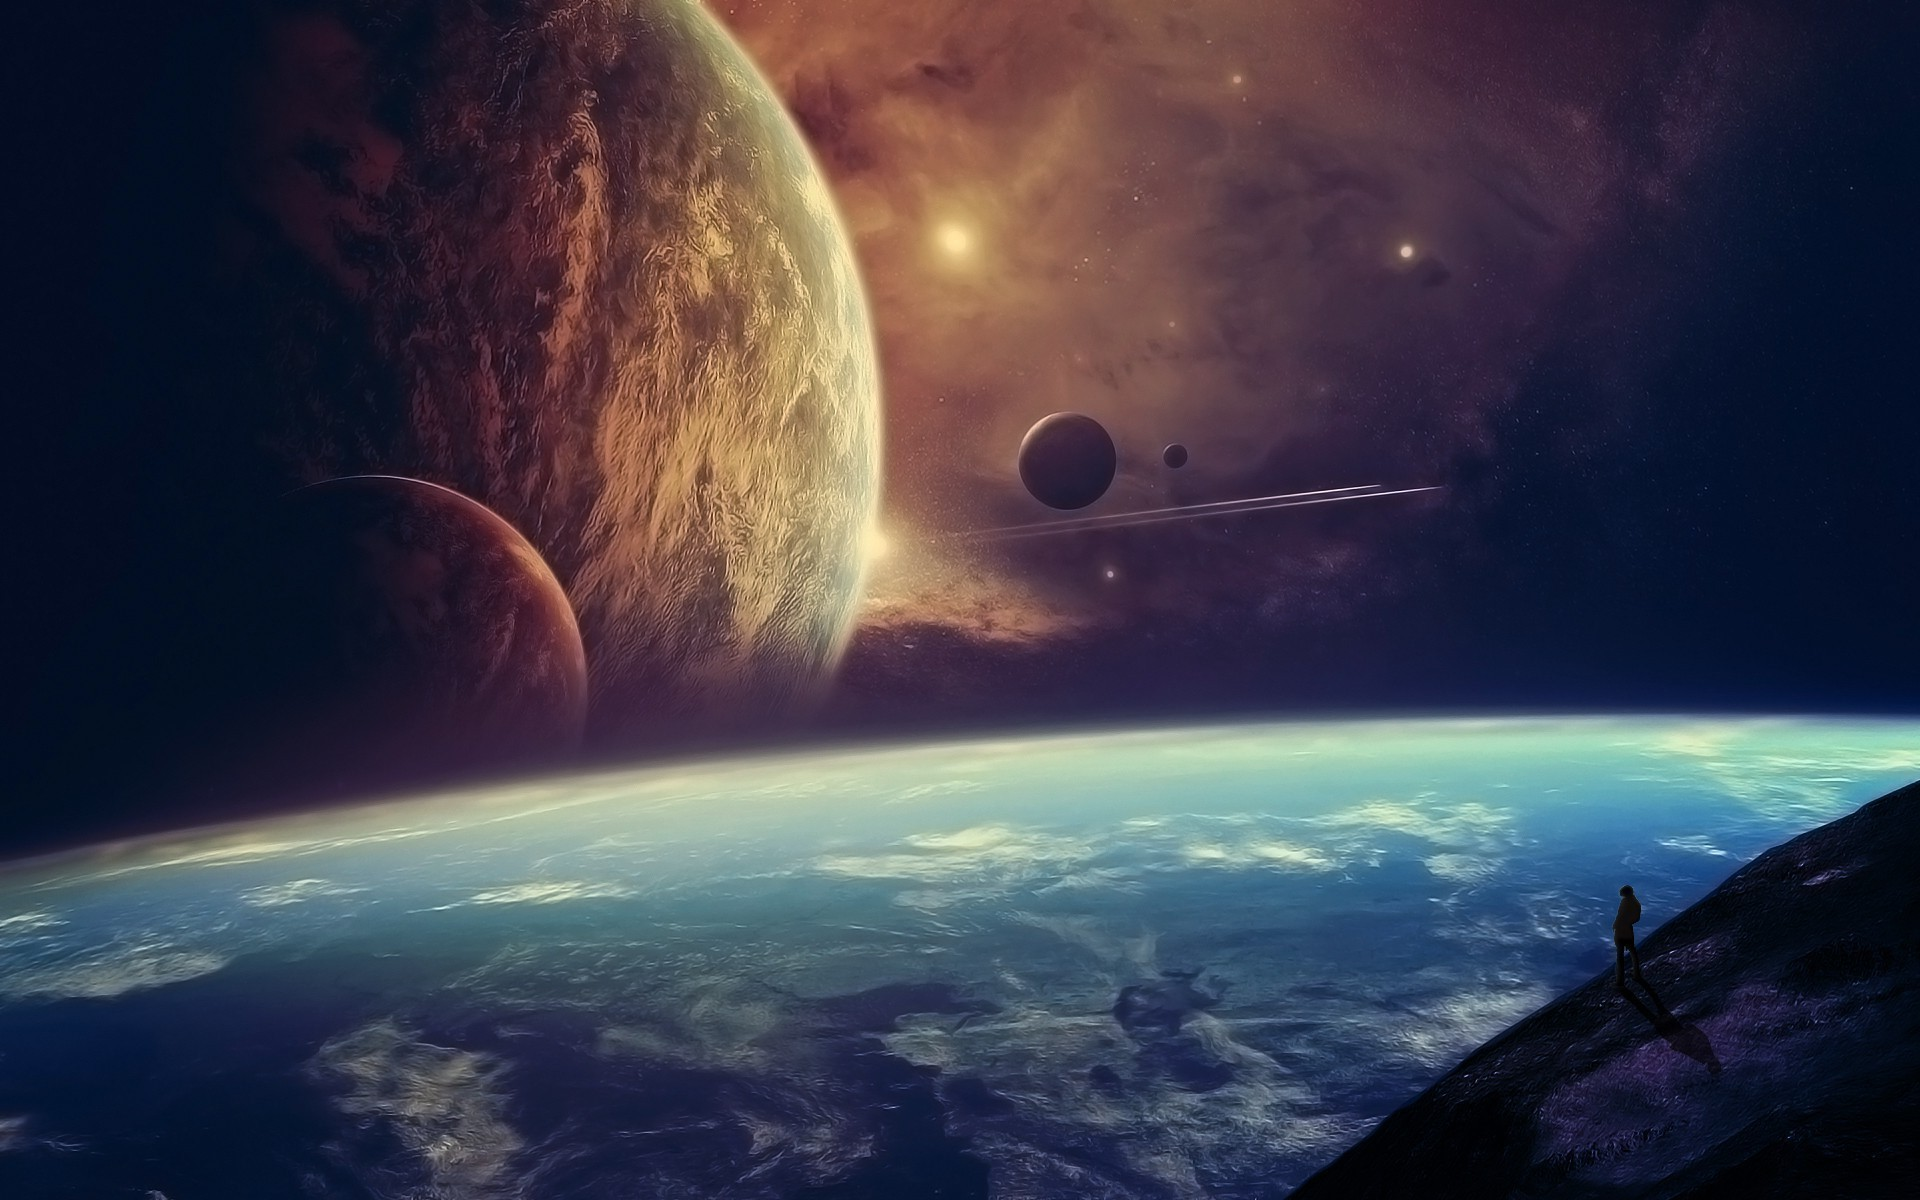 Res: 1920x1200, space art planet moon artwork science fiction wallpaper and background